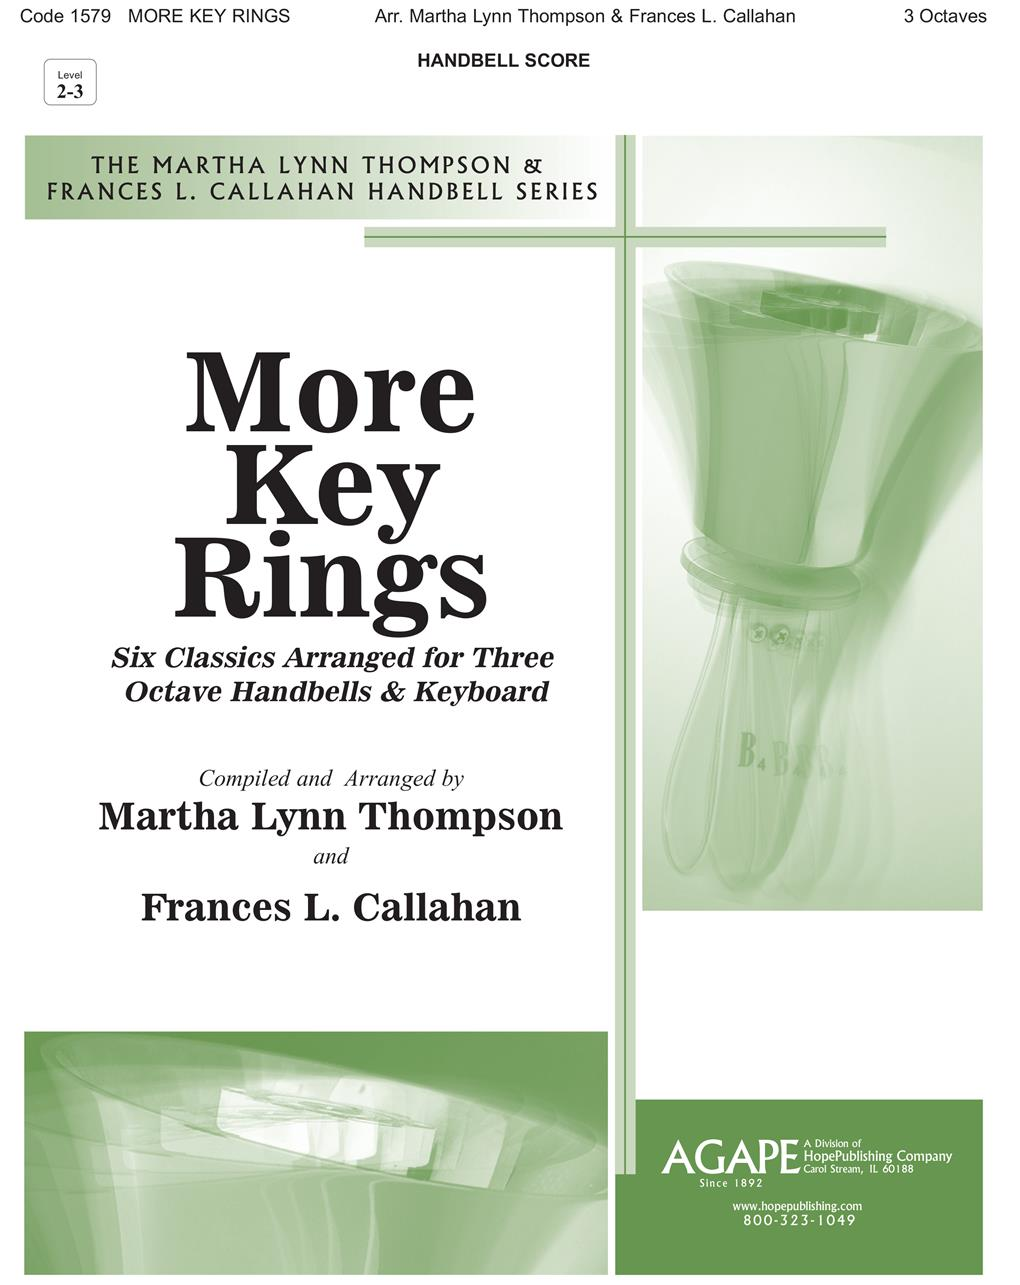 More Key Rings - 3 Oct. Collection Cover Image